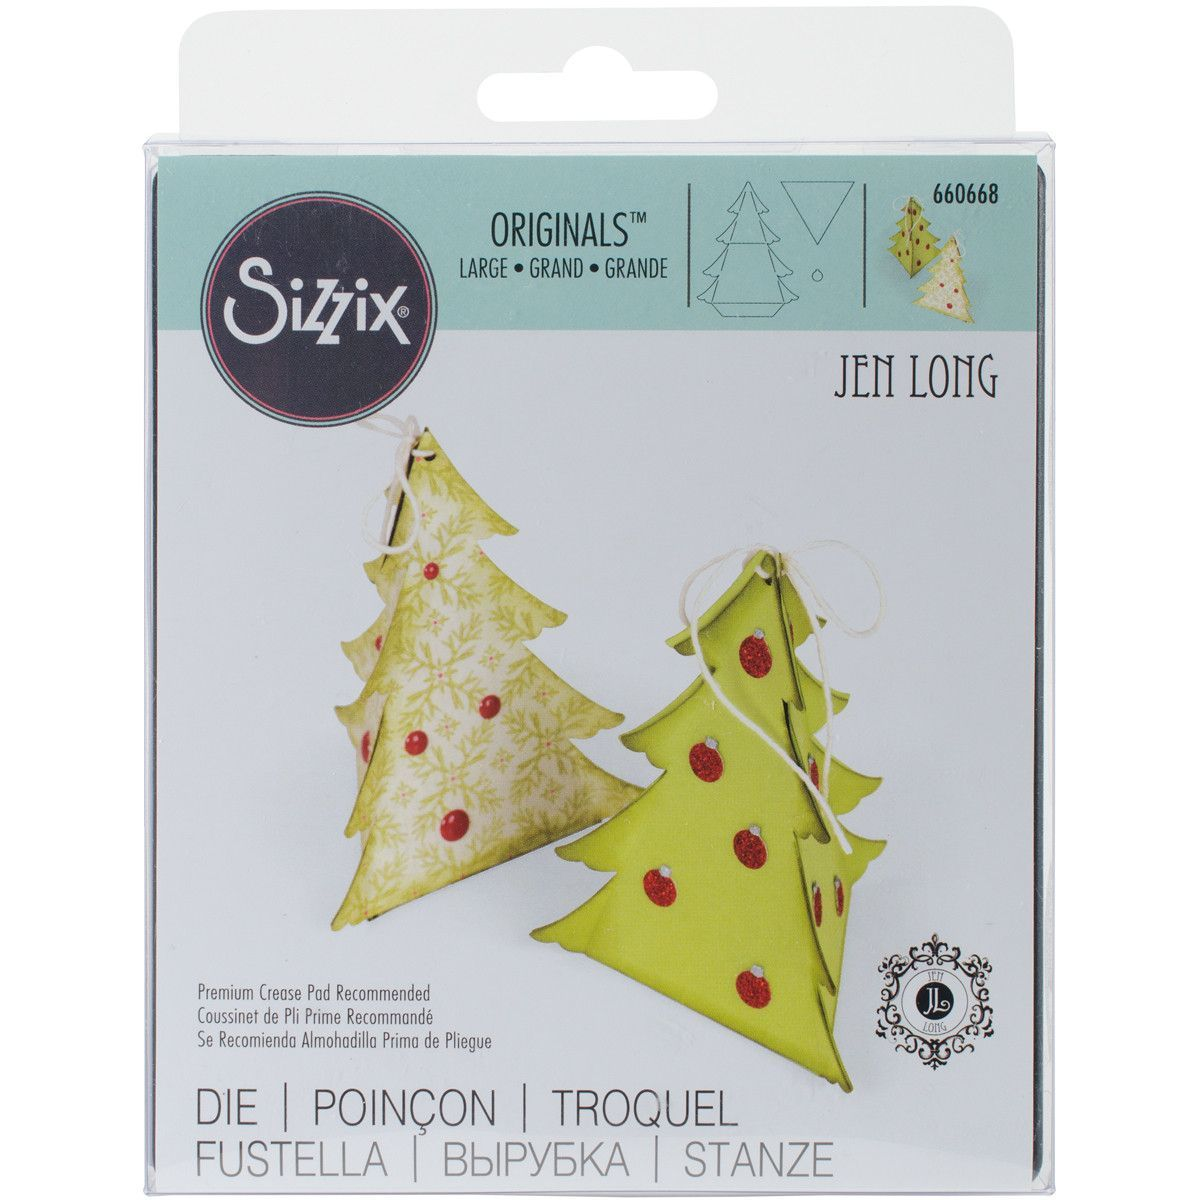 Sizzix Originals Die-Christmas Tree Box | Products | Pinterest ...